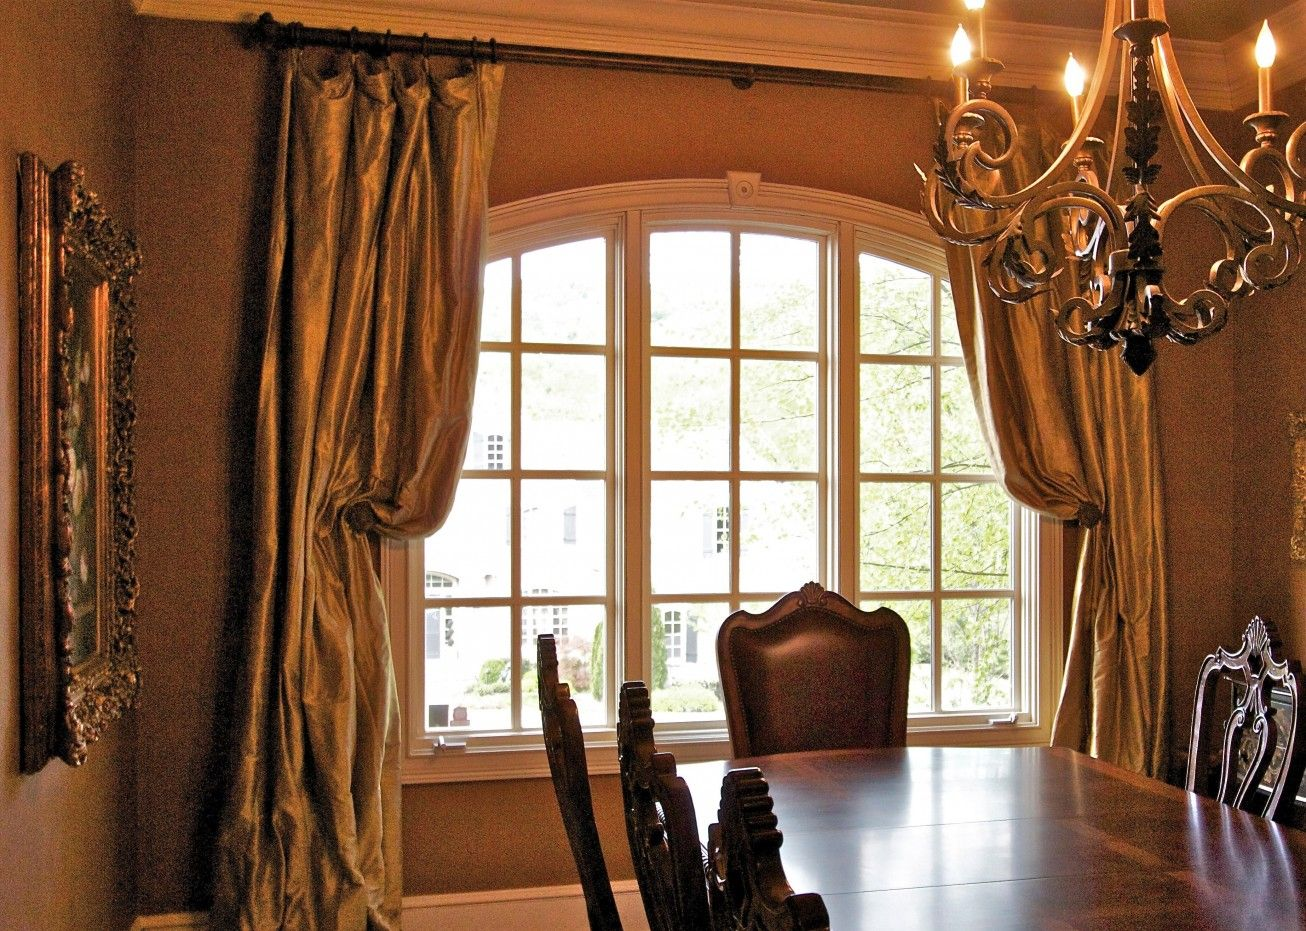 Dining Room Curtain 1000 Images About Dinning Room On Pinterest Dining Sets Dining